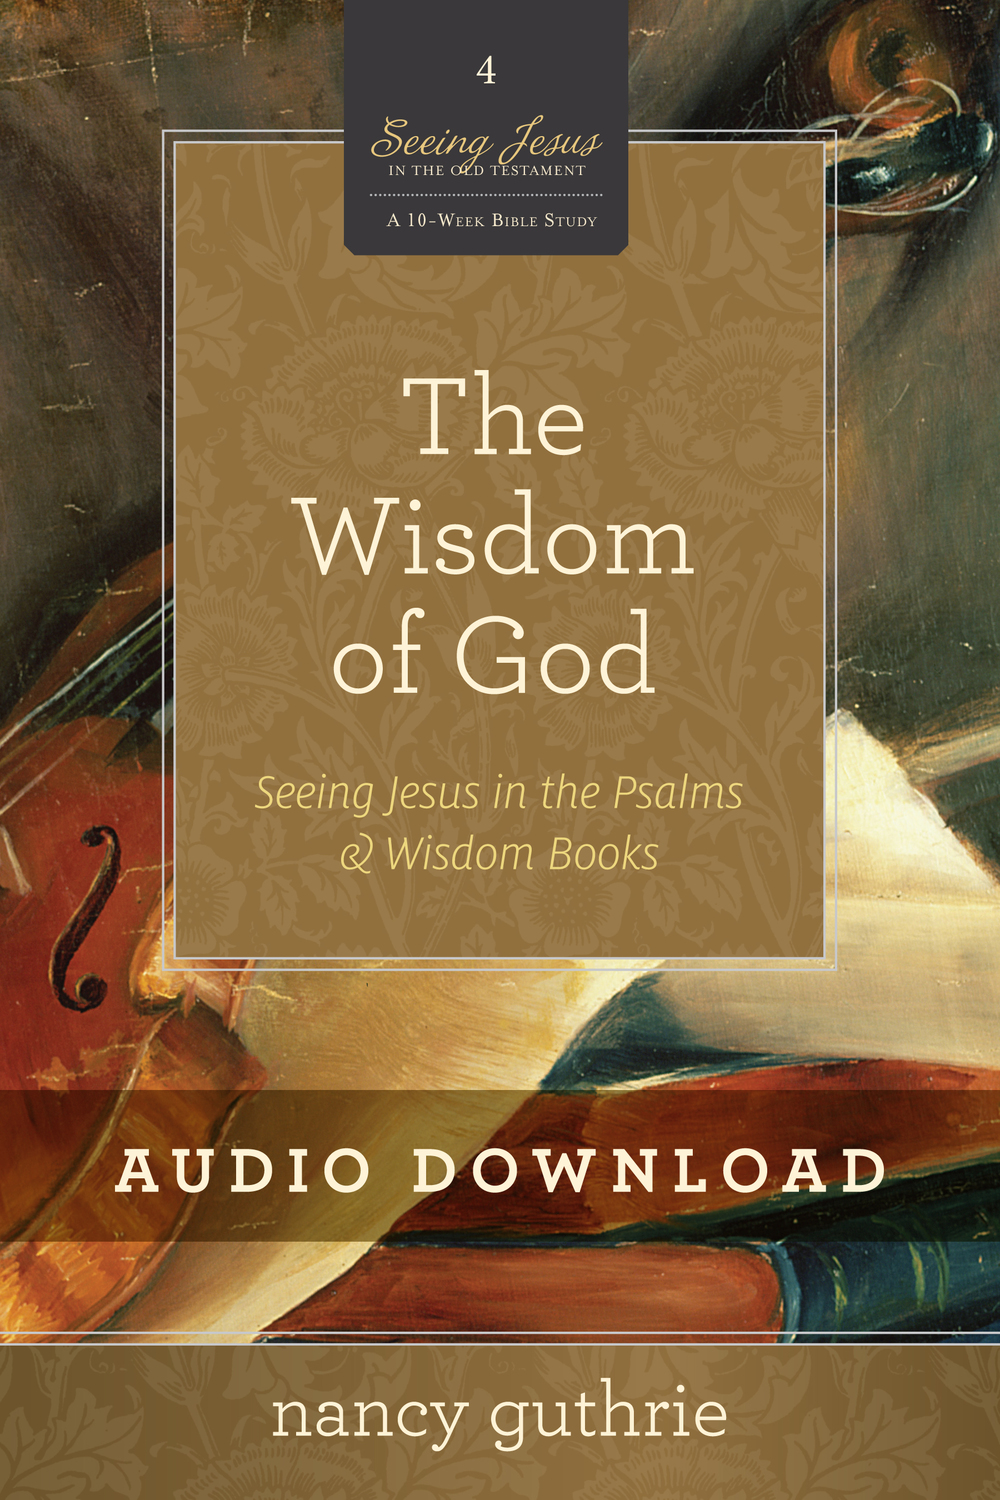 The Wisdom of God Audio Session 7 Download